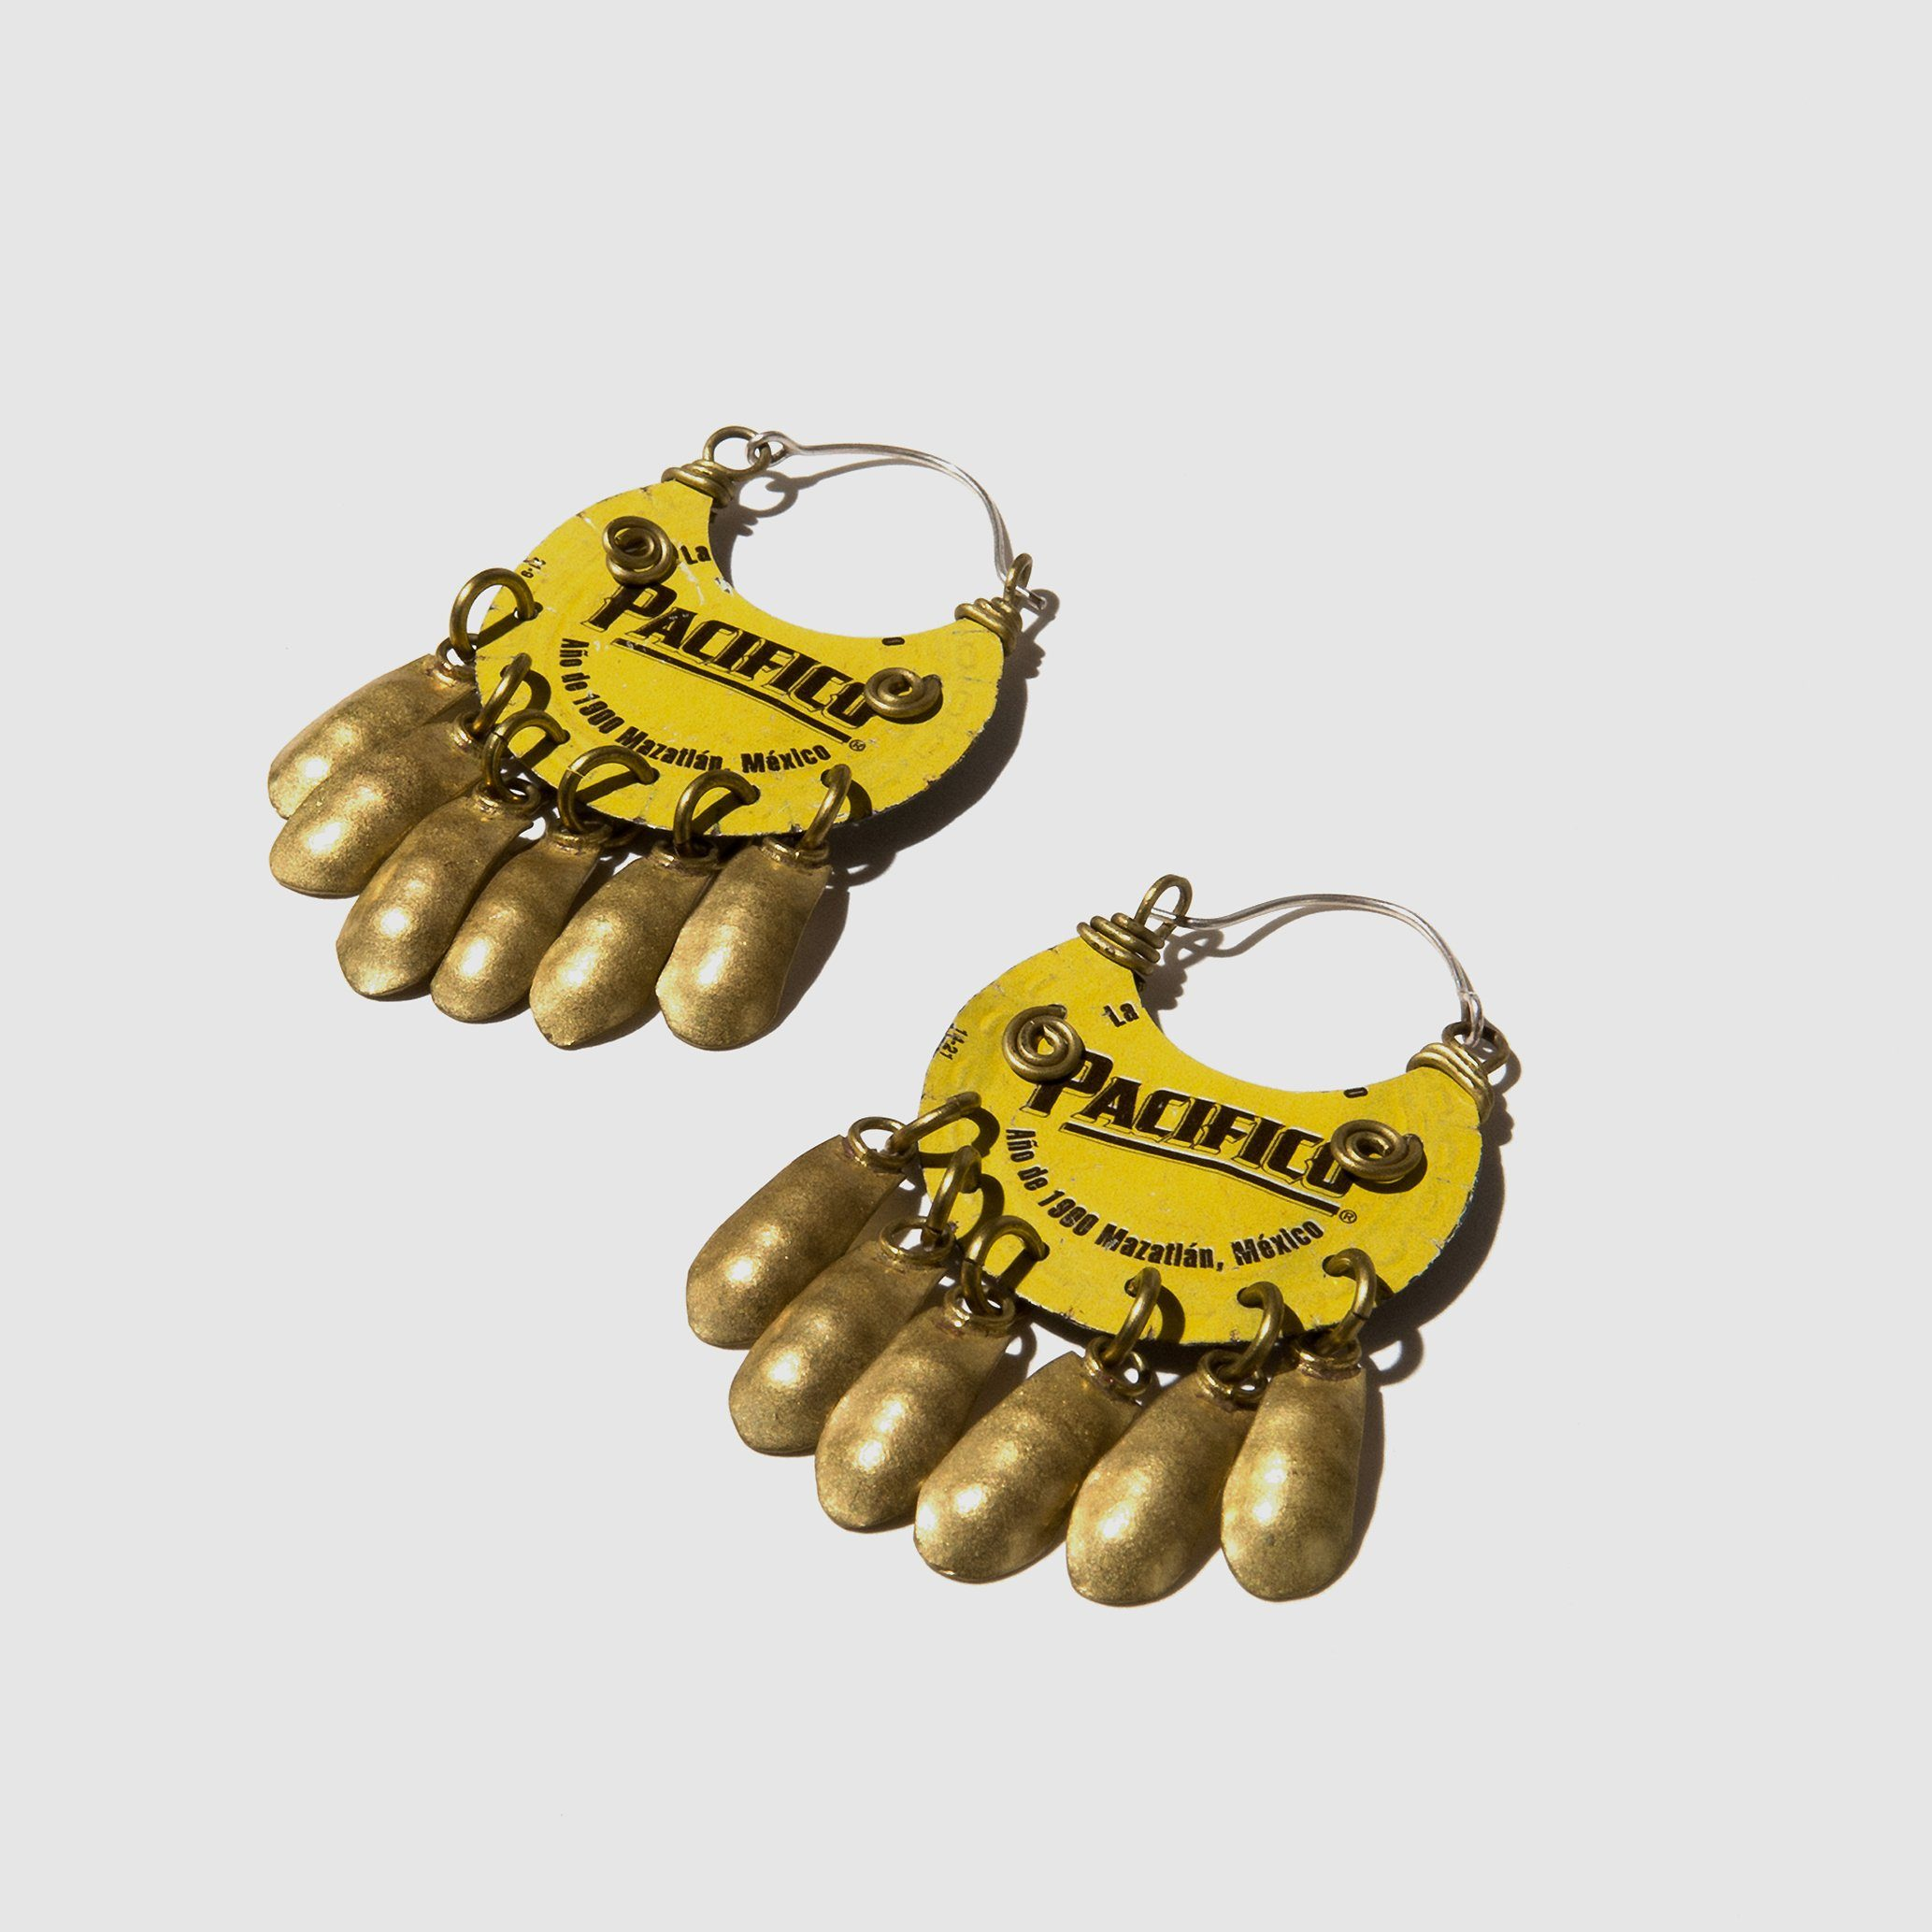 JEWELRY - PACIFICO CHANDELIER EARRINGS